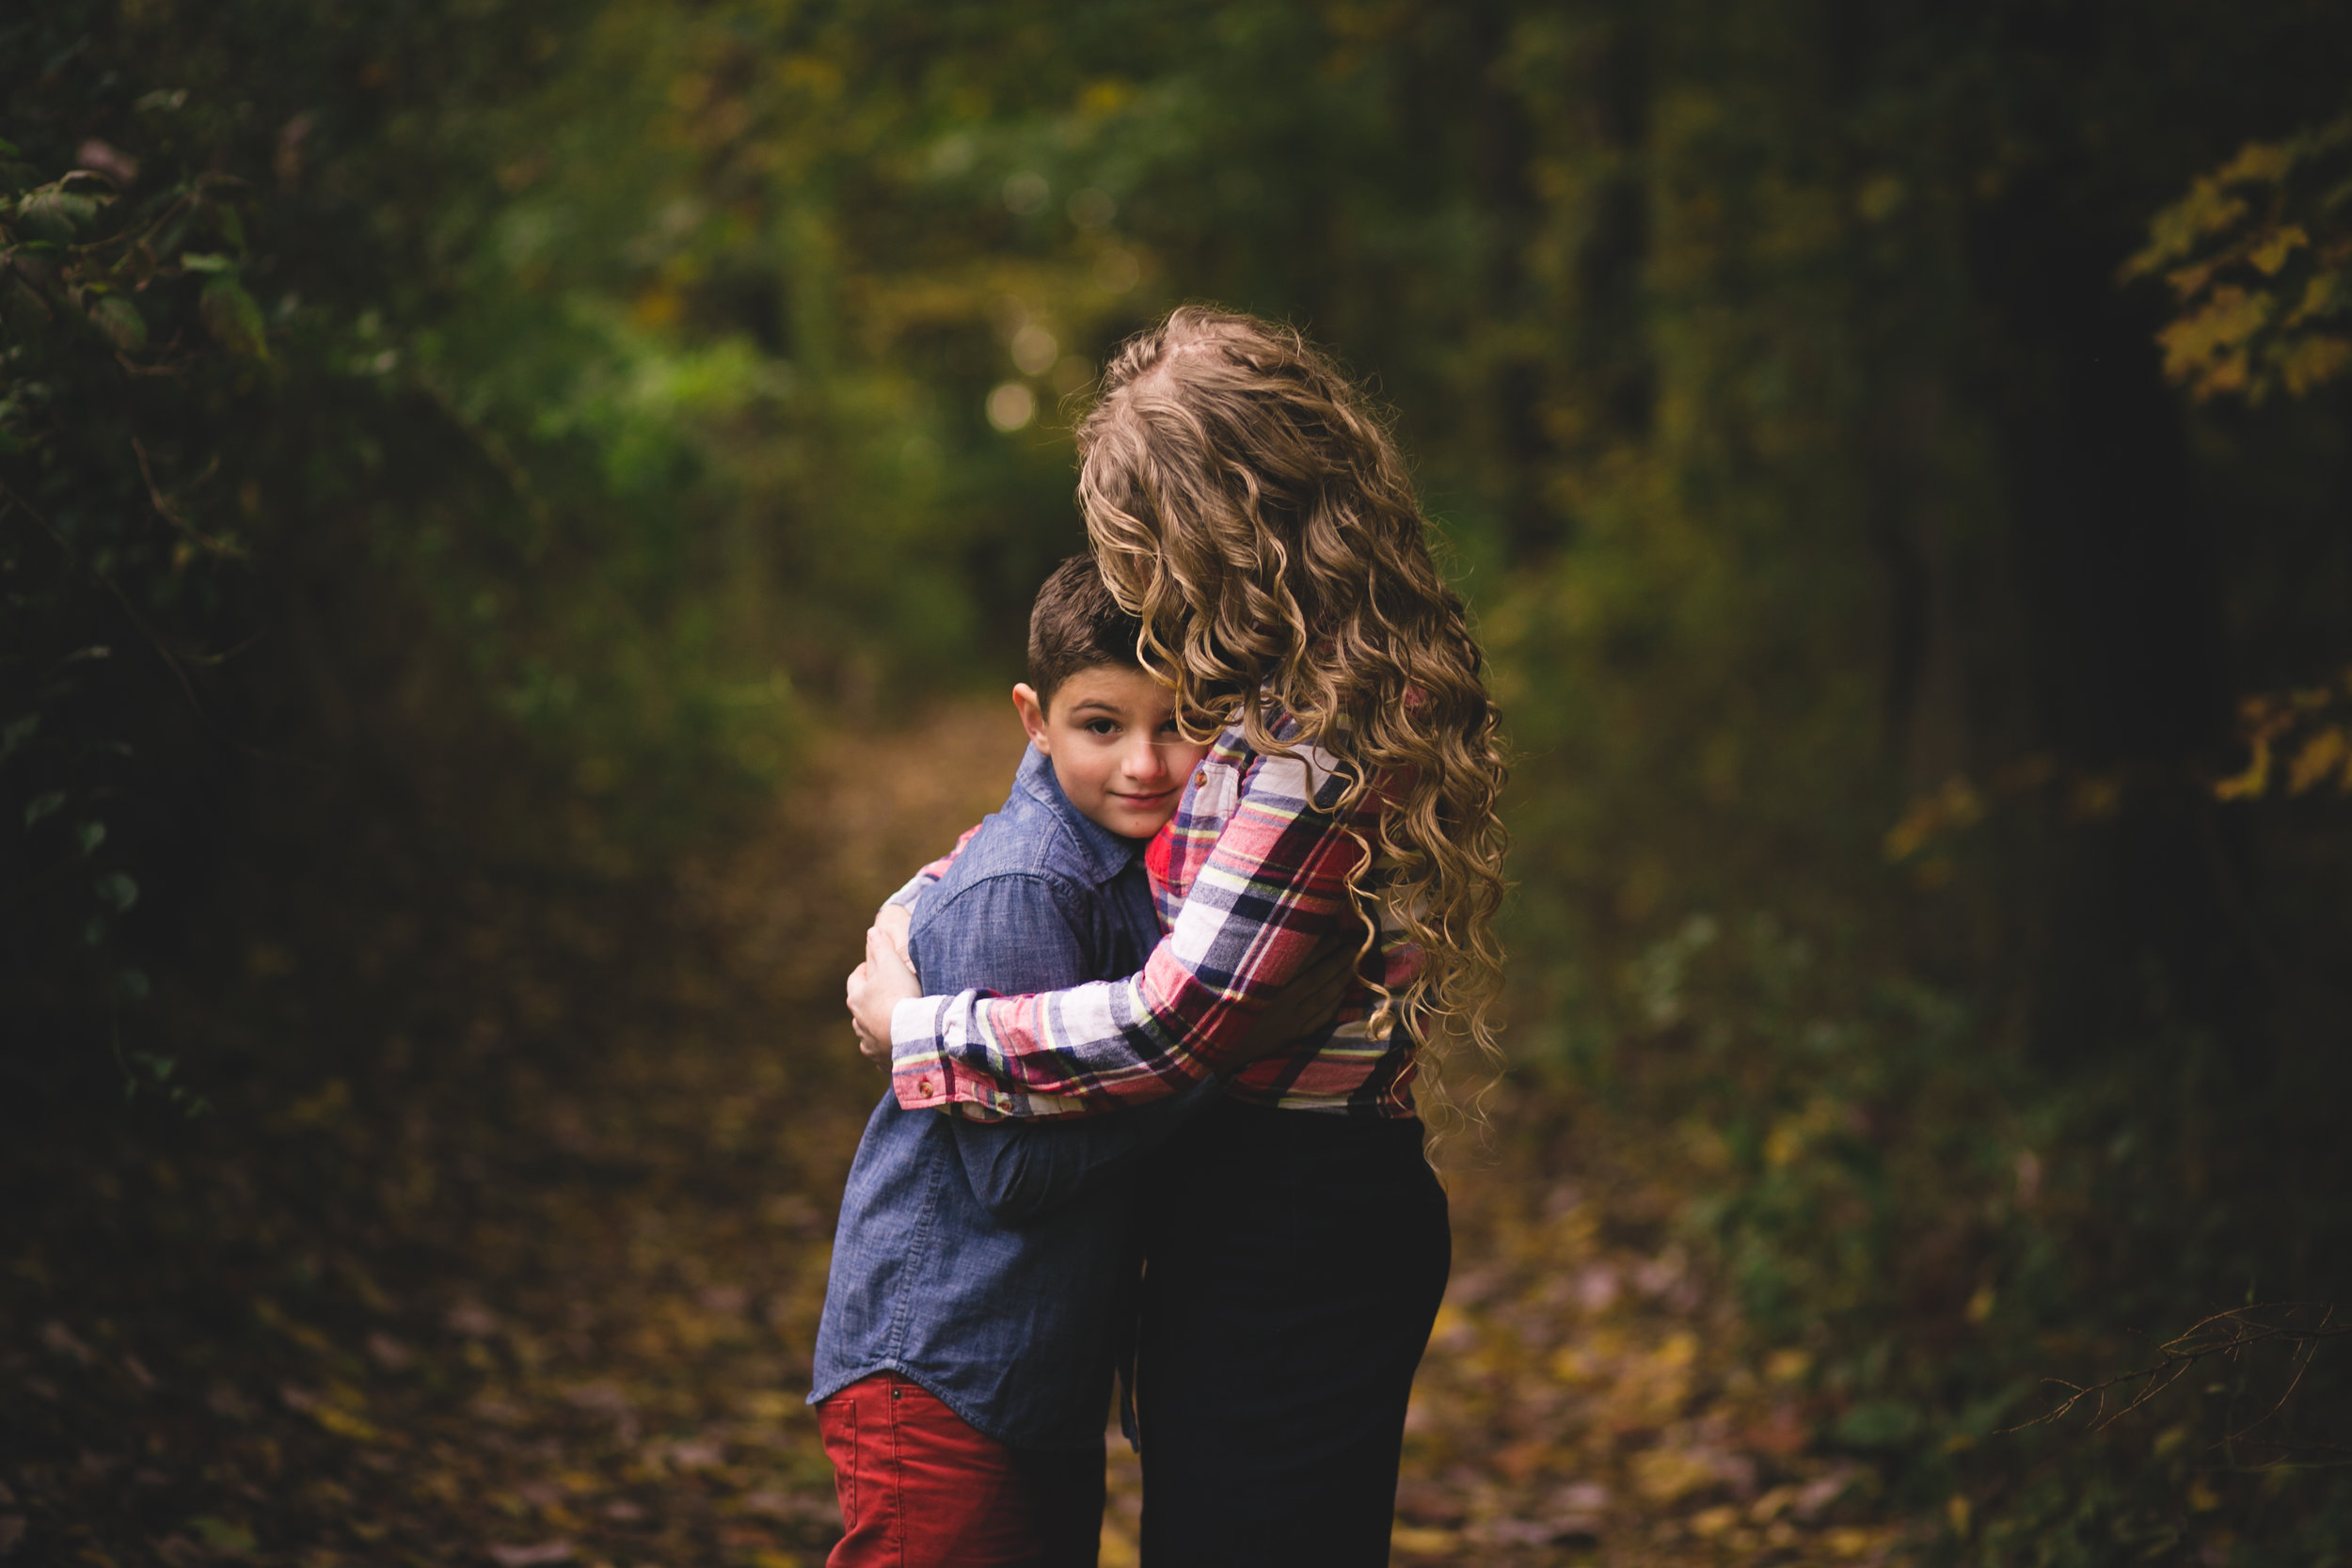 Professional Family Photos, Mother and son, Mishawaka, IN